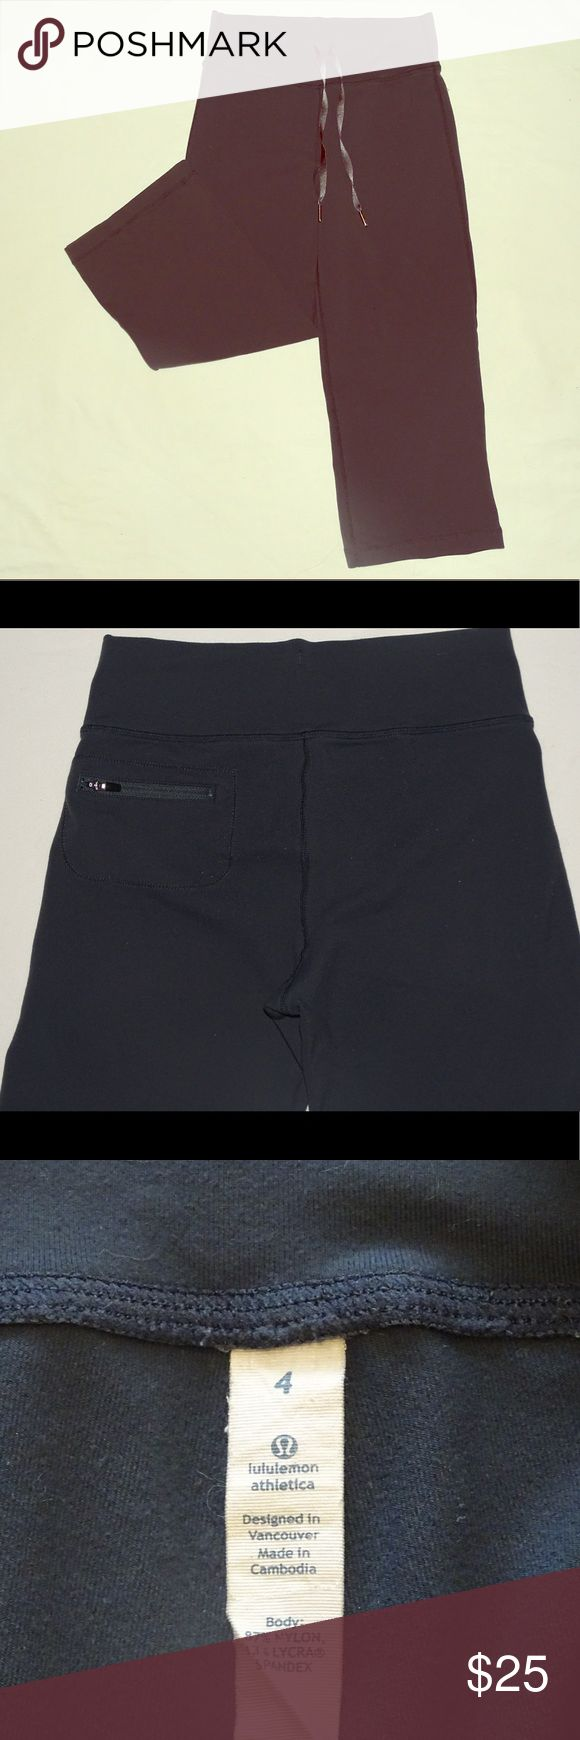 Lululemon Yoga Capris Lululemon Charcoal gray yoga capri is made of 87 percent nylon that makes it super comfortable. Back of pants has some wear - please see picture. lululemon athletica Pants Leggings